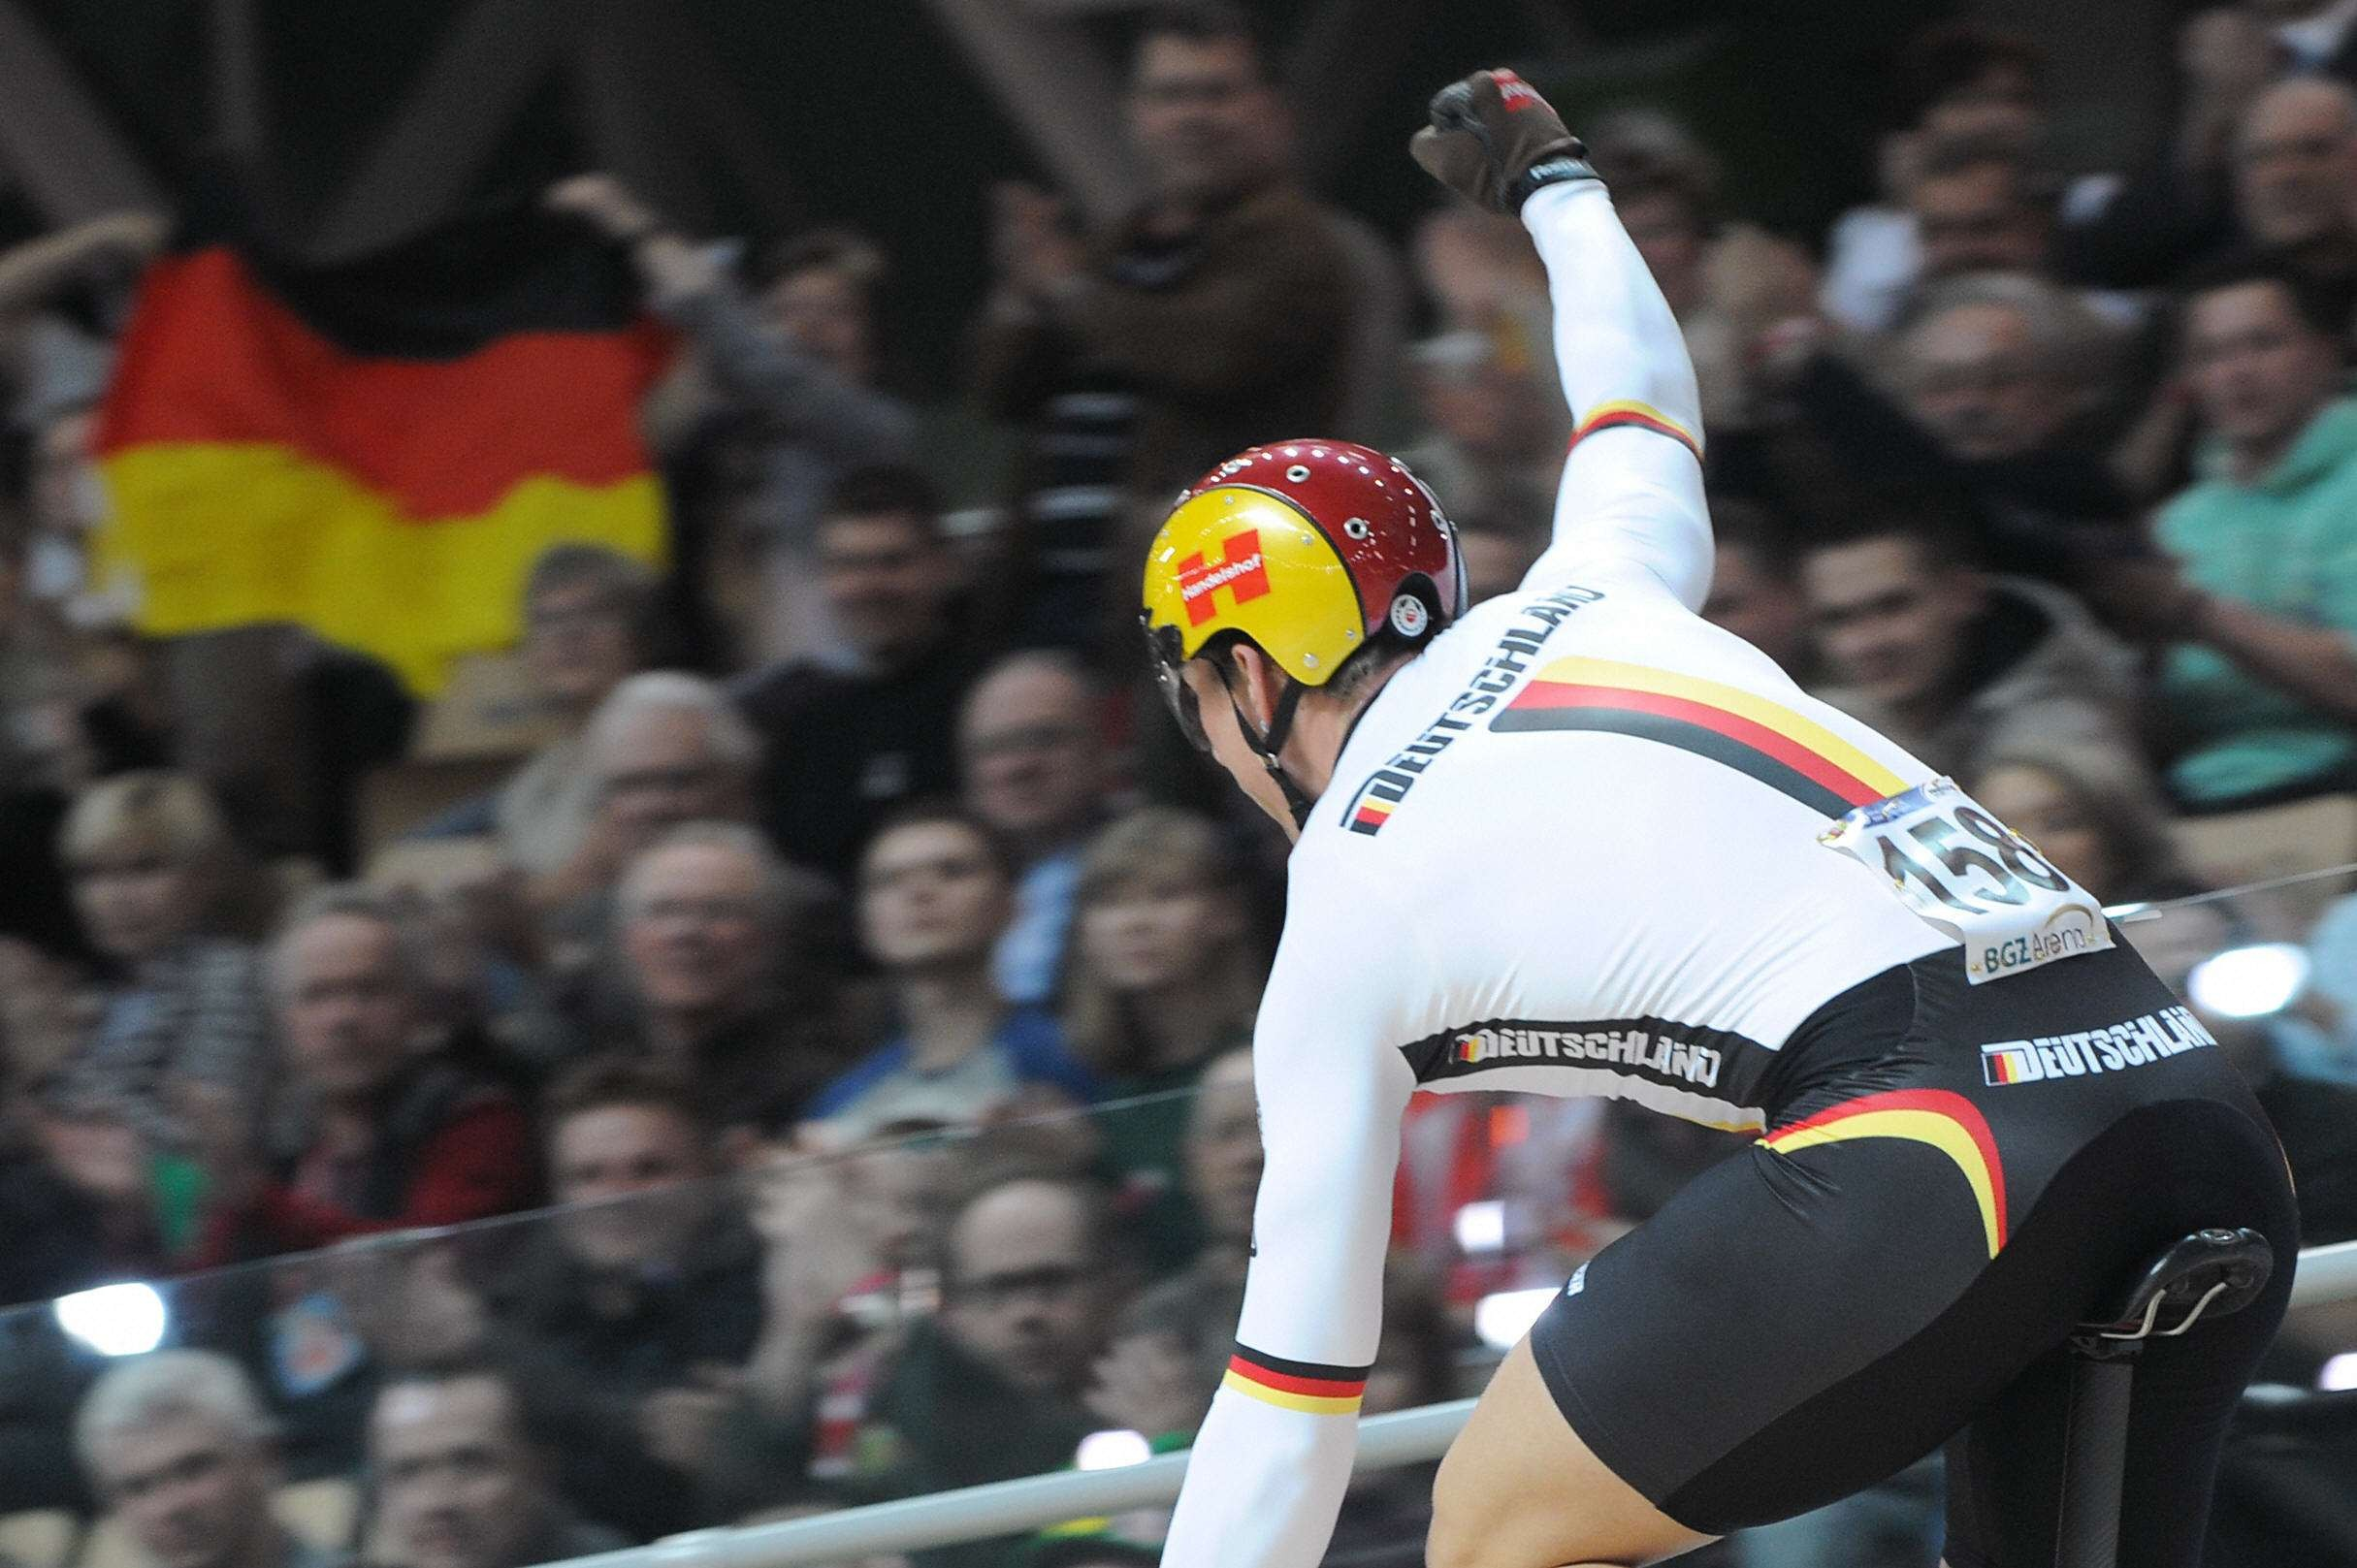 Germany's Stefan Nimke celebrates after winning the men's 1km time trial final during the UCI Track World Championships 2009 on March 27, 2009 at the BGZ Arena in Pruszkow, Poland.